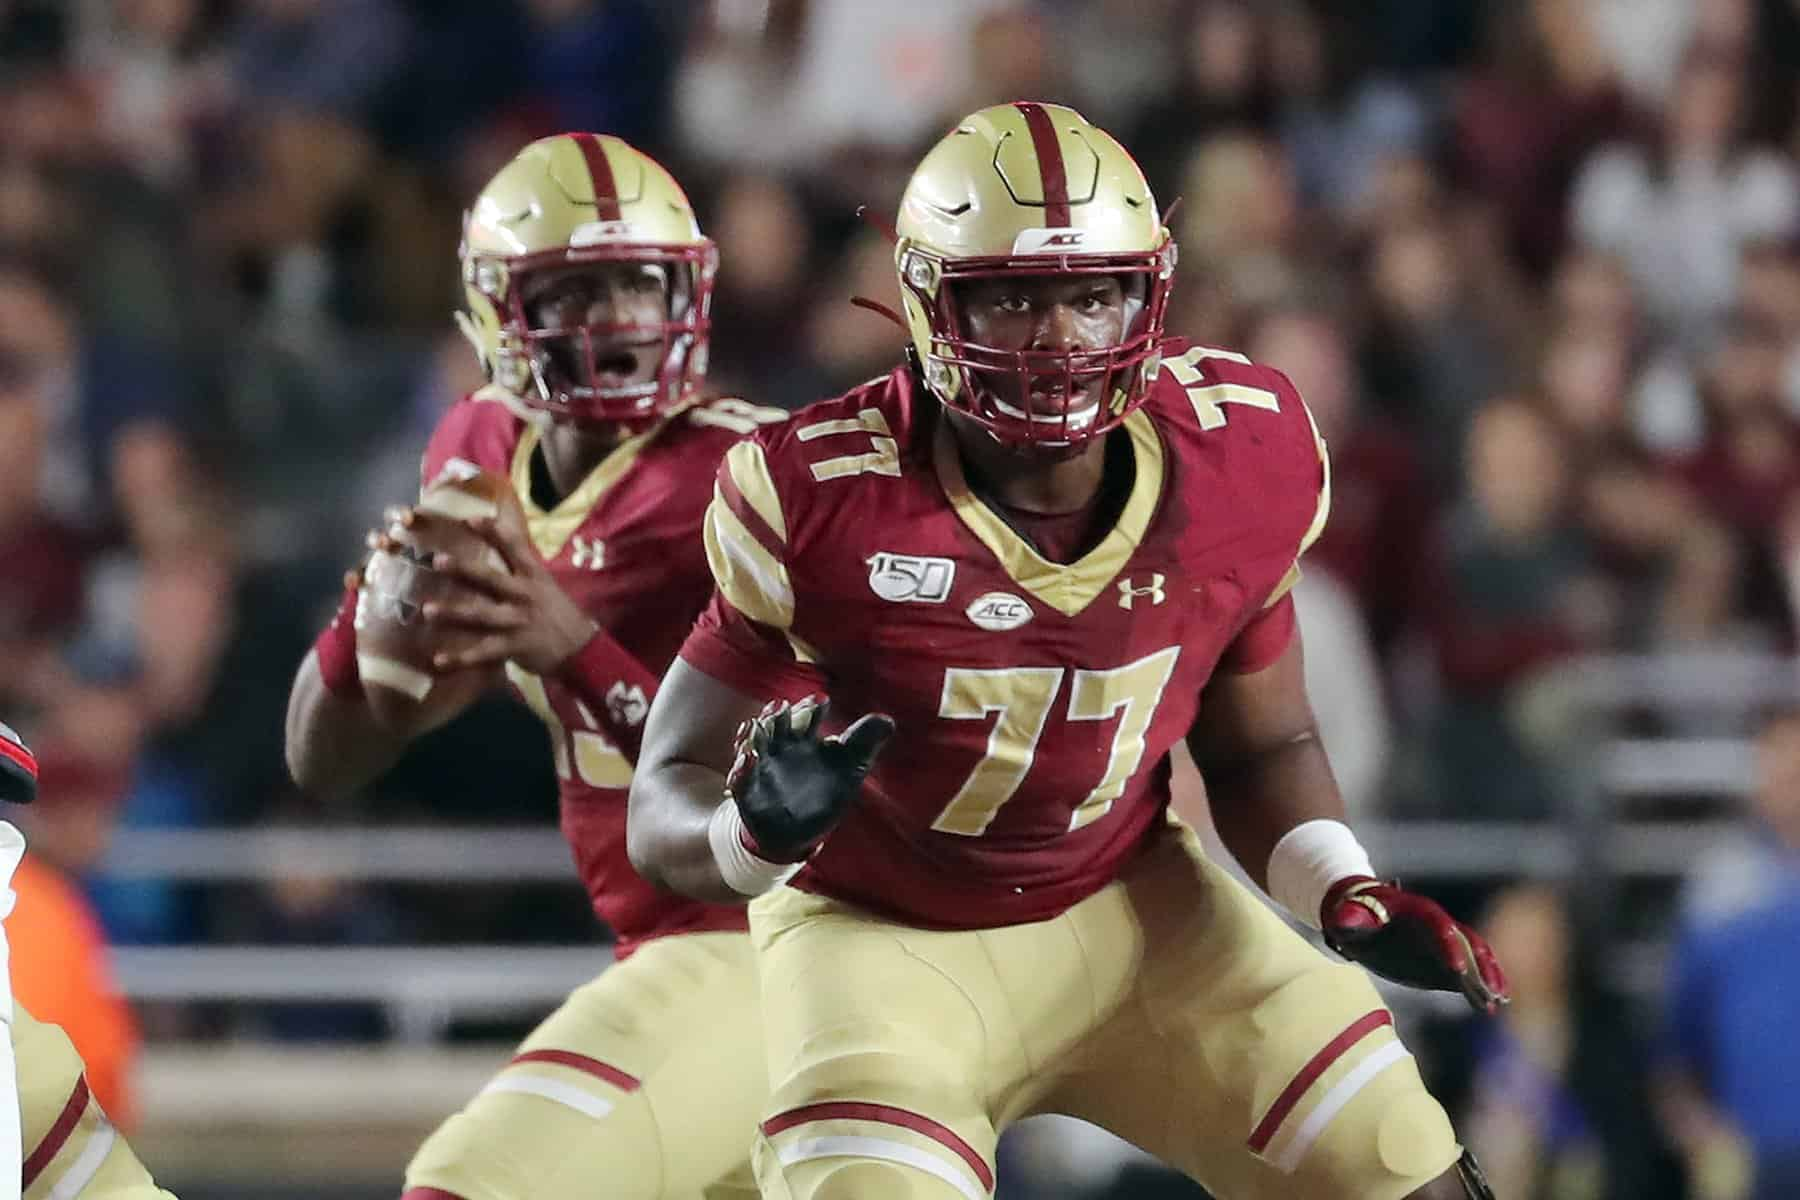 Boston College guard Zion Johnson is an NFL Draft sleeper